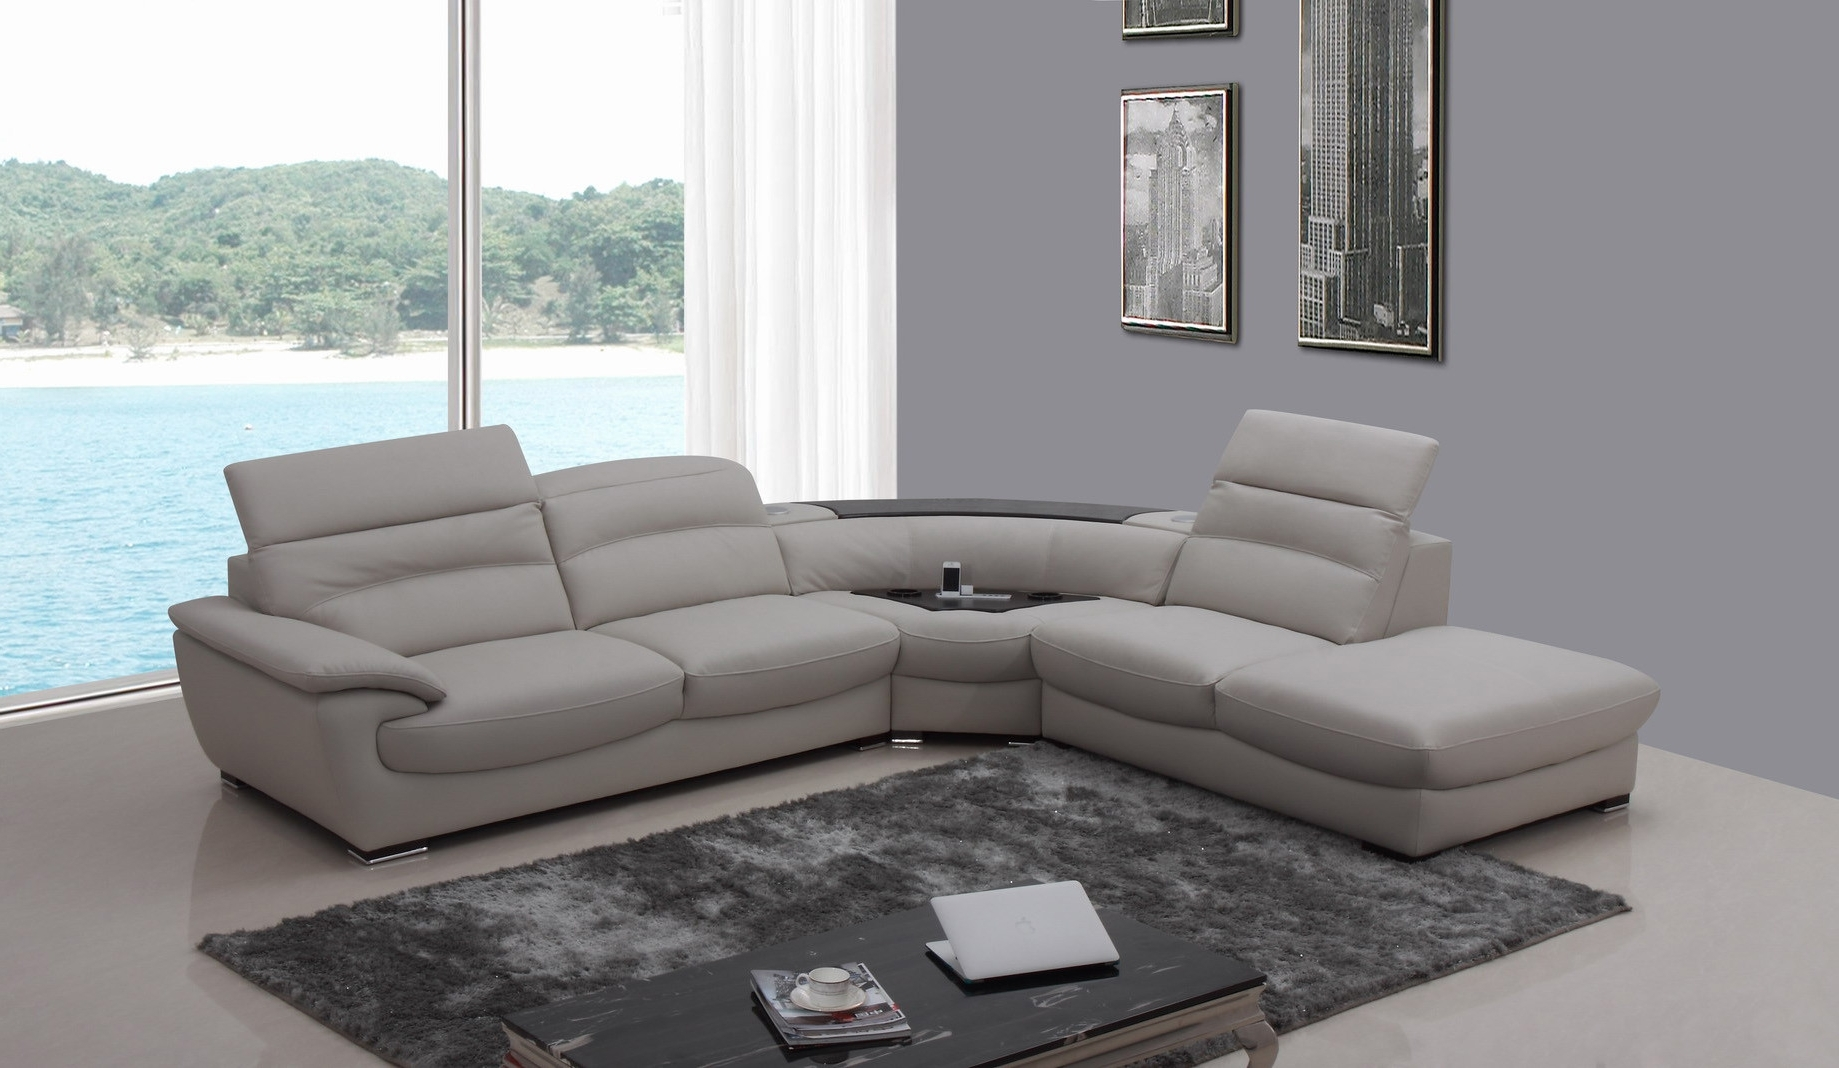 Well Liked Casa Miracle Modern Light Grey Italian Leather Sectional Sofa Regarding Miami Sectional Sofas (View 14 of 15)